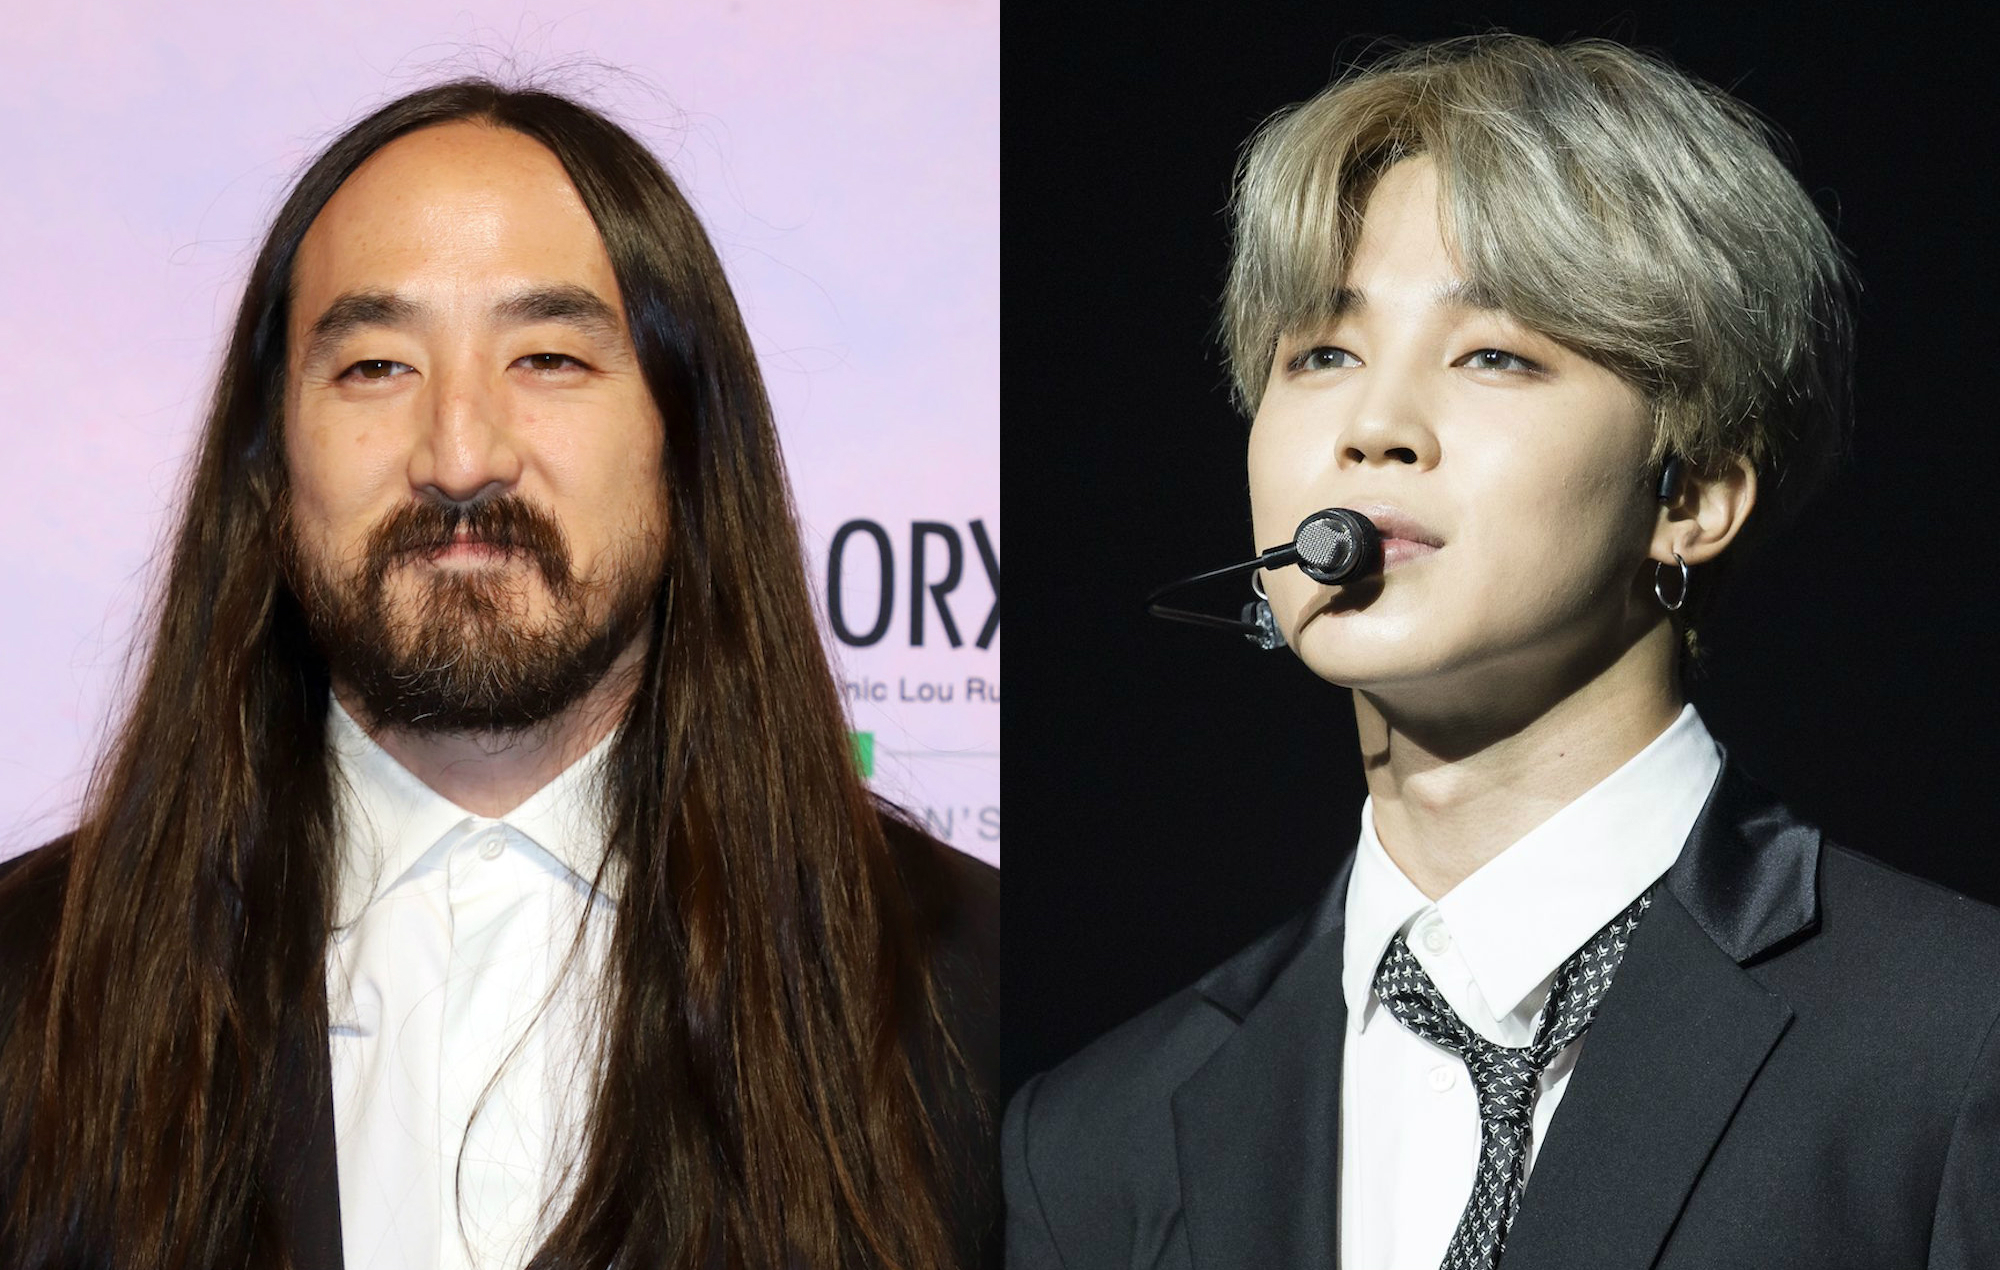 Steve Aoki Shares All Asian American Cast Video For Bts